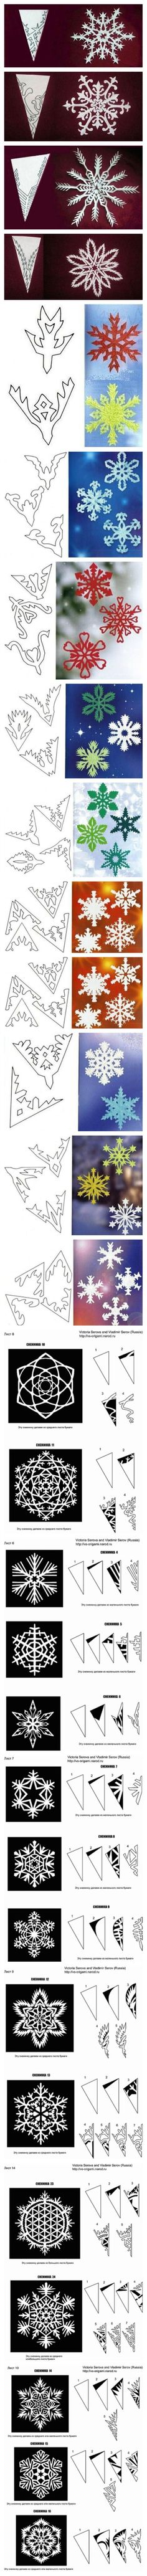 snowflake patterns...love to do these!!!!